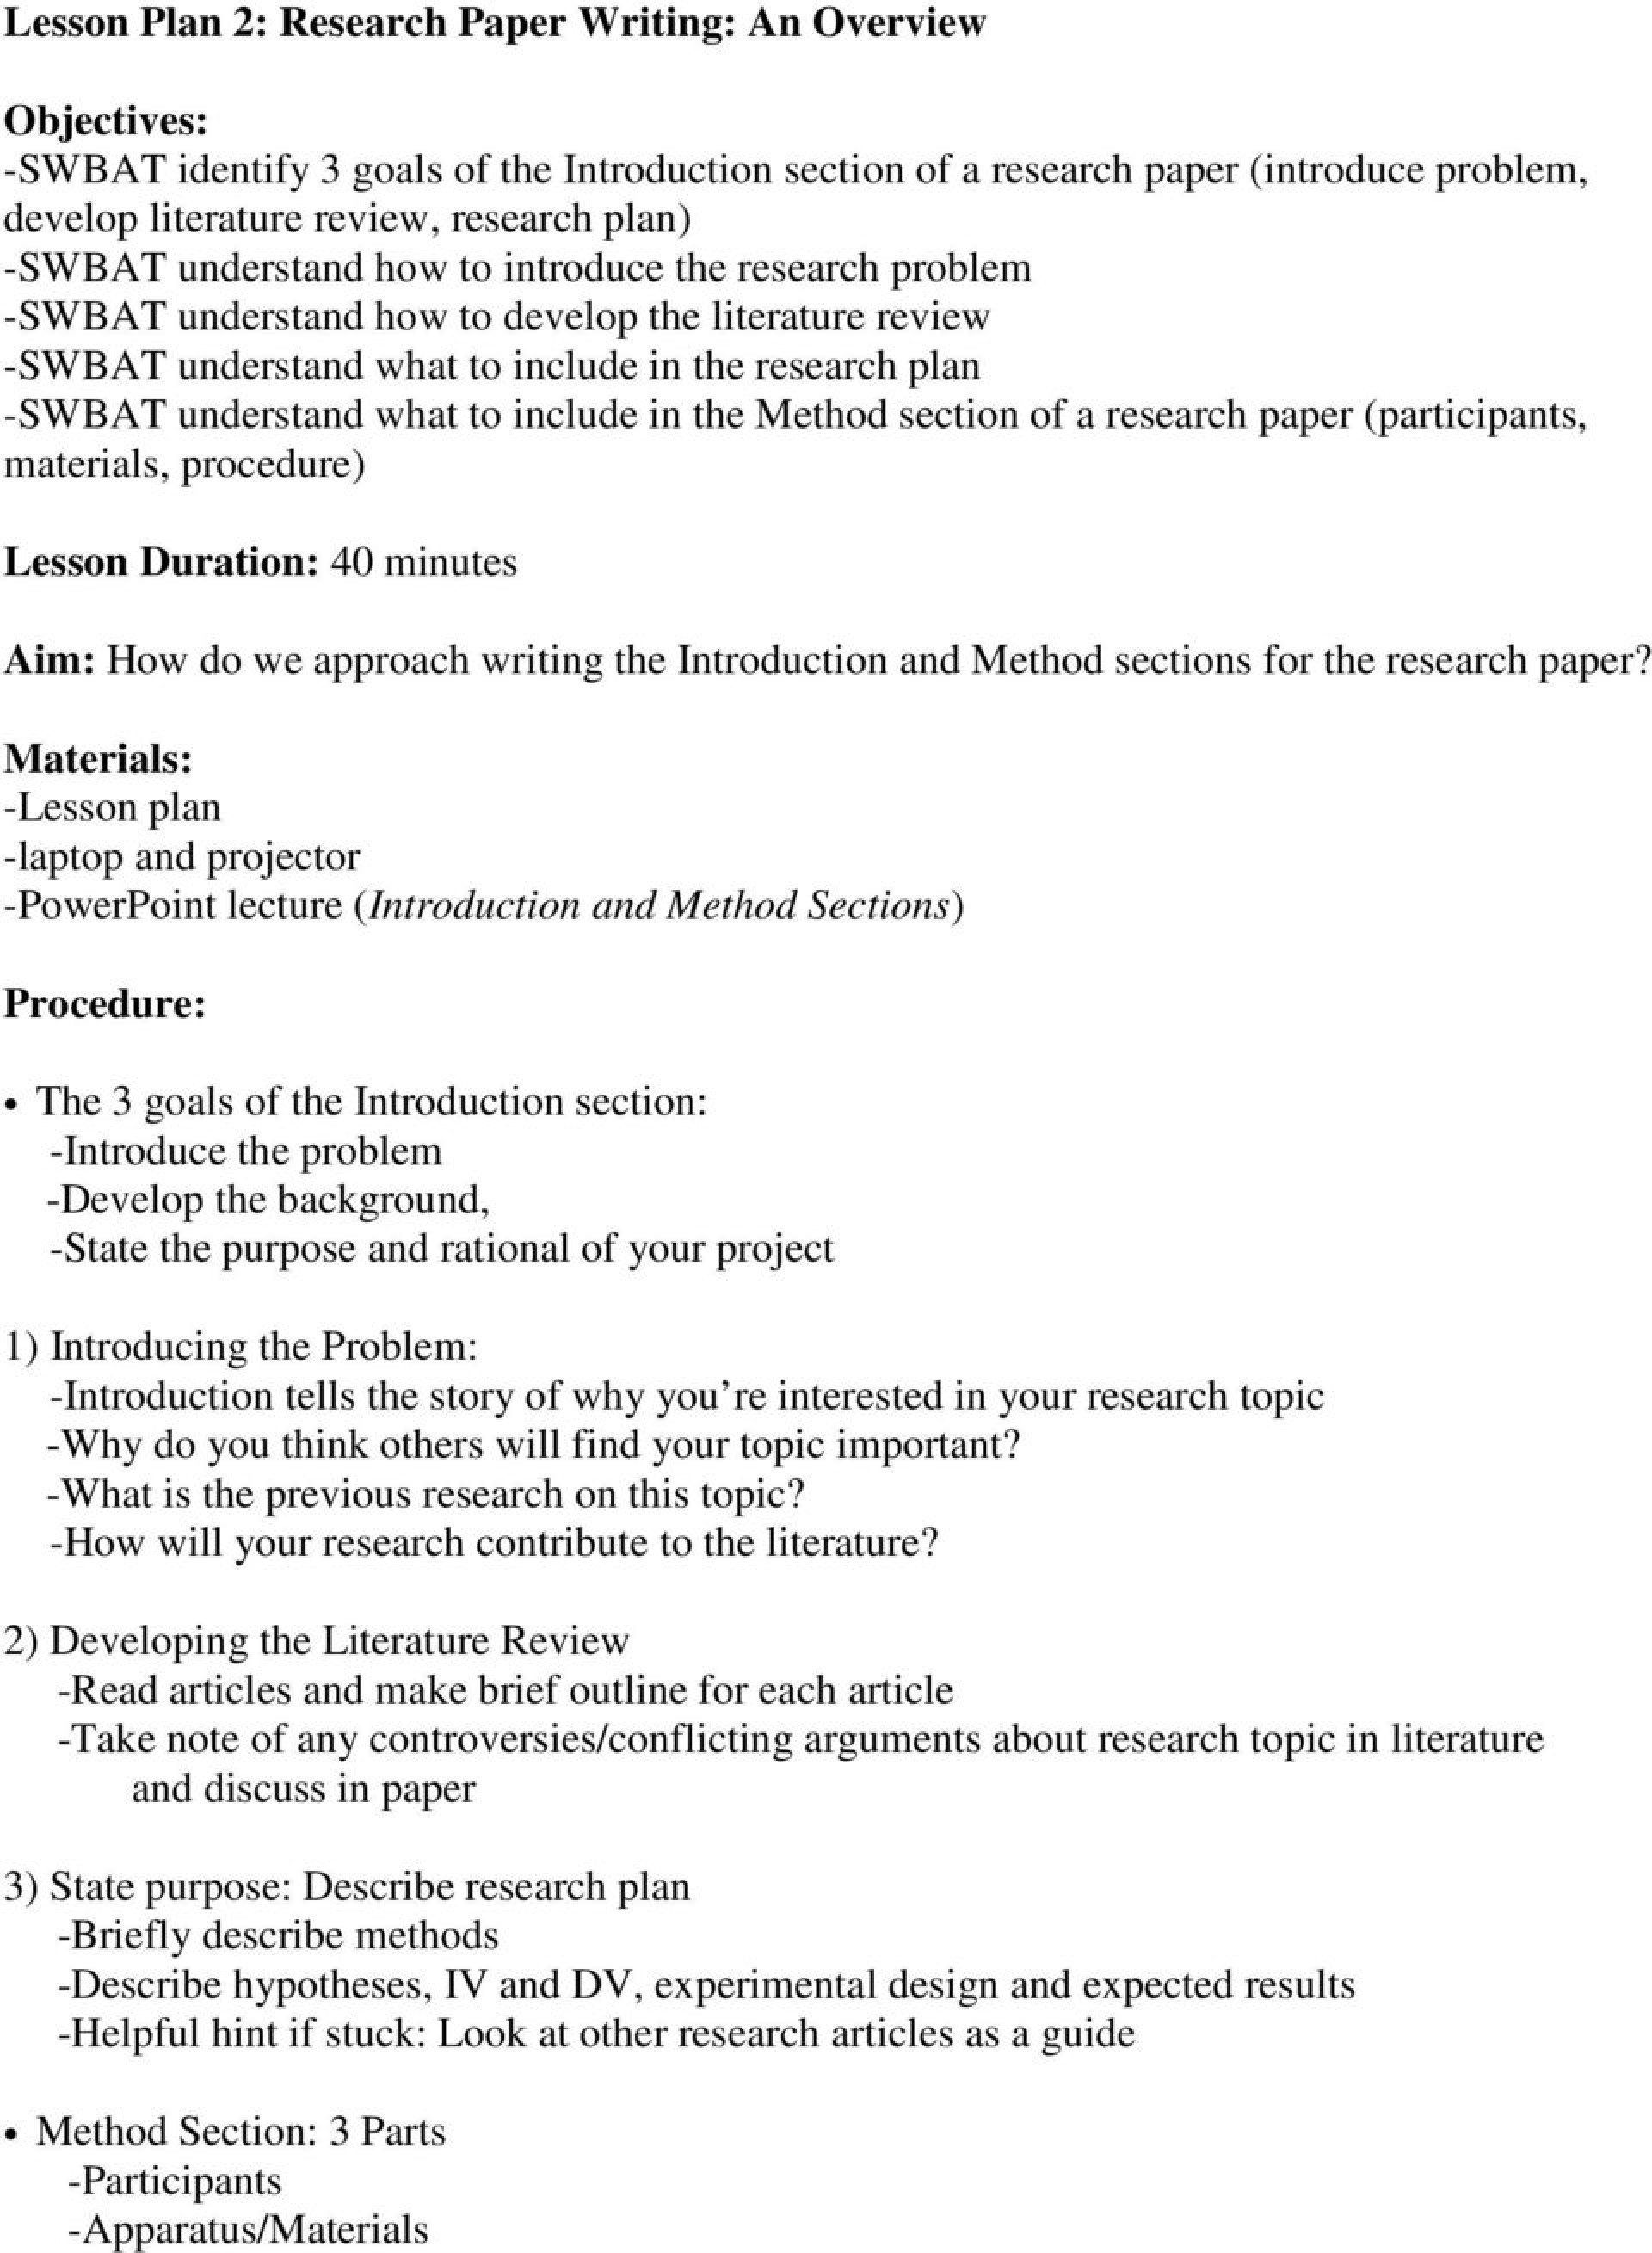 022 Page 16 Introduction To Research Paper Outstanding Ppt How Write In An For A Powerpoint 1920